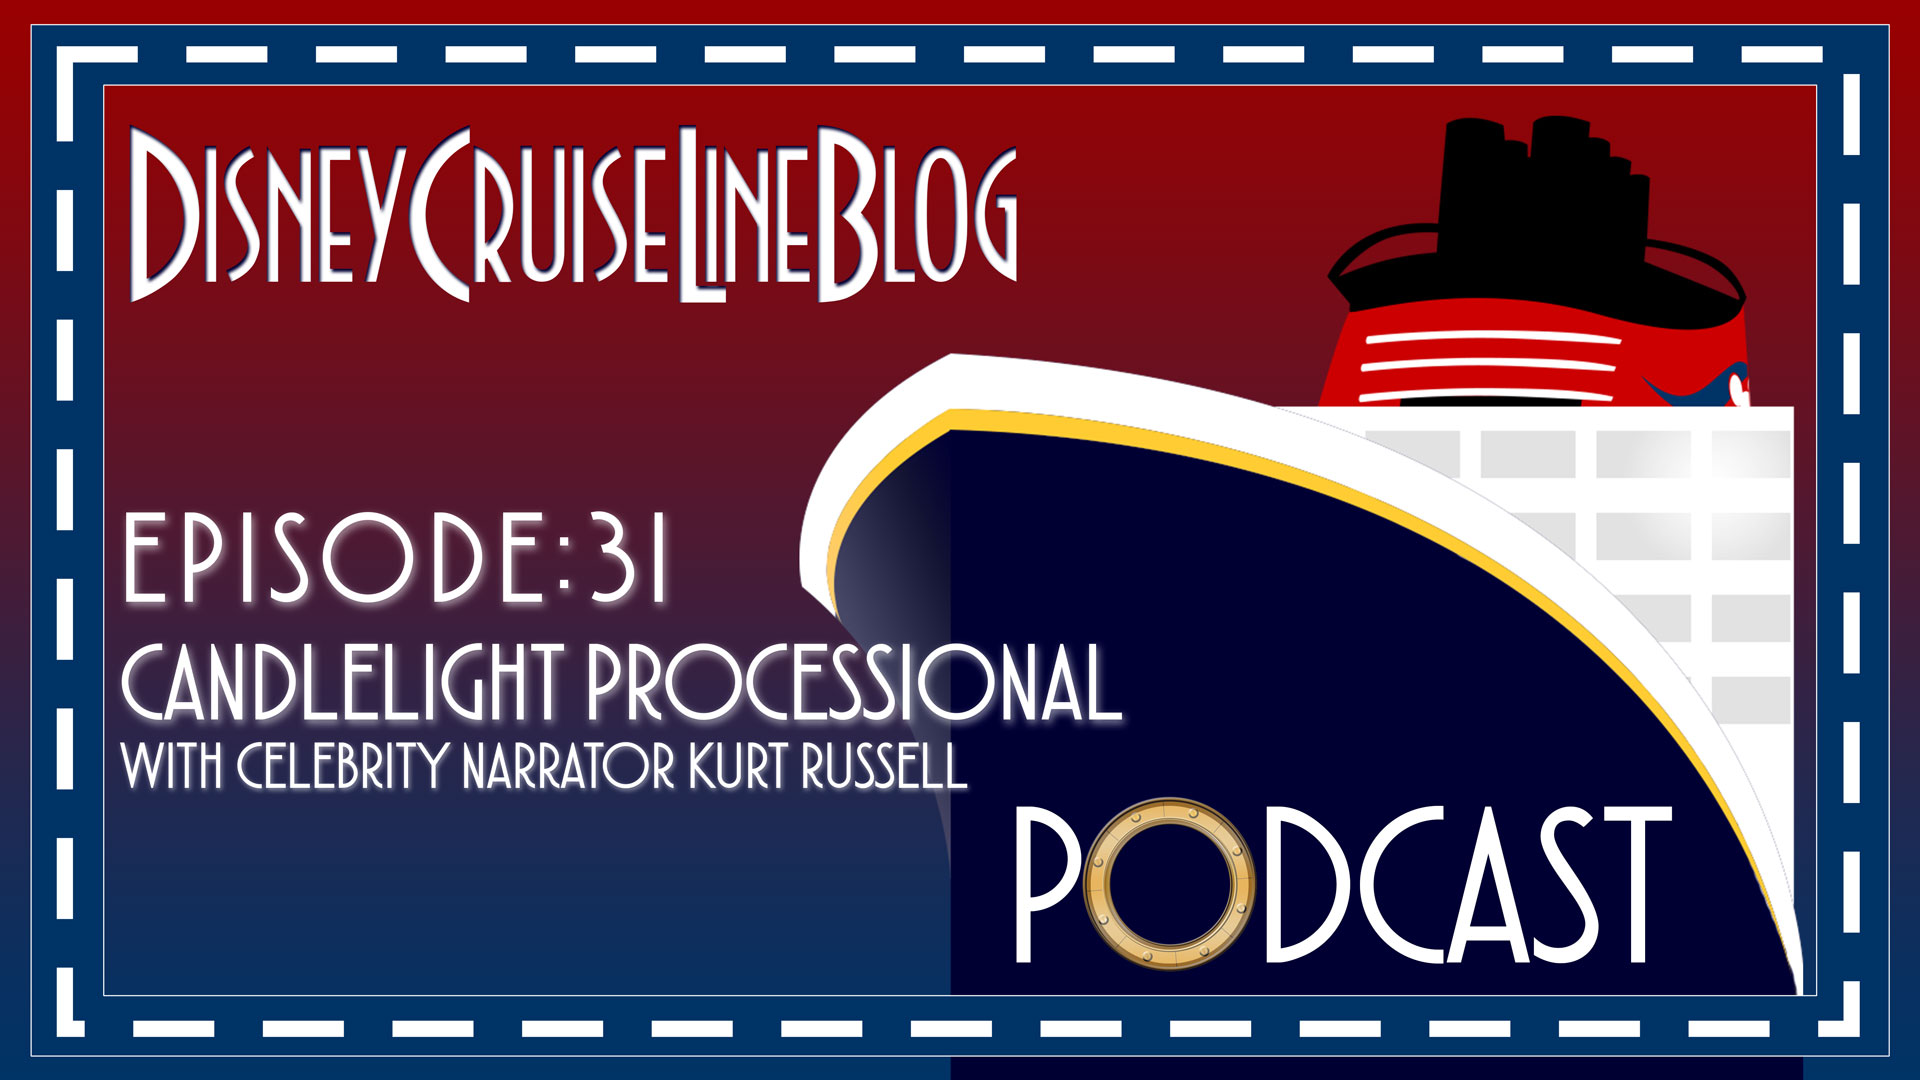 DCL Blog Podcast Episode 31 Candlelight Processional Kurt Russell